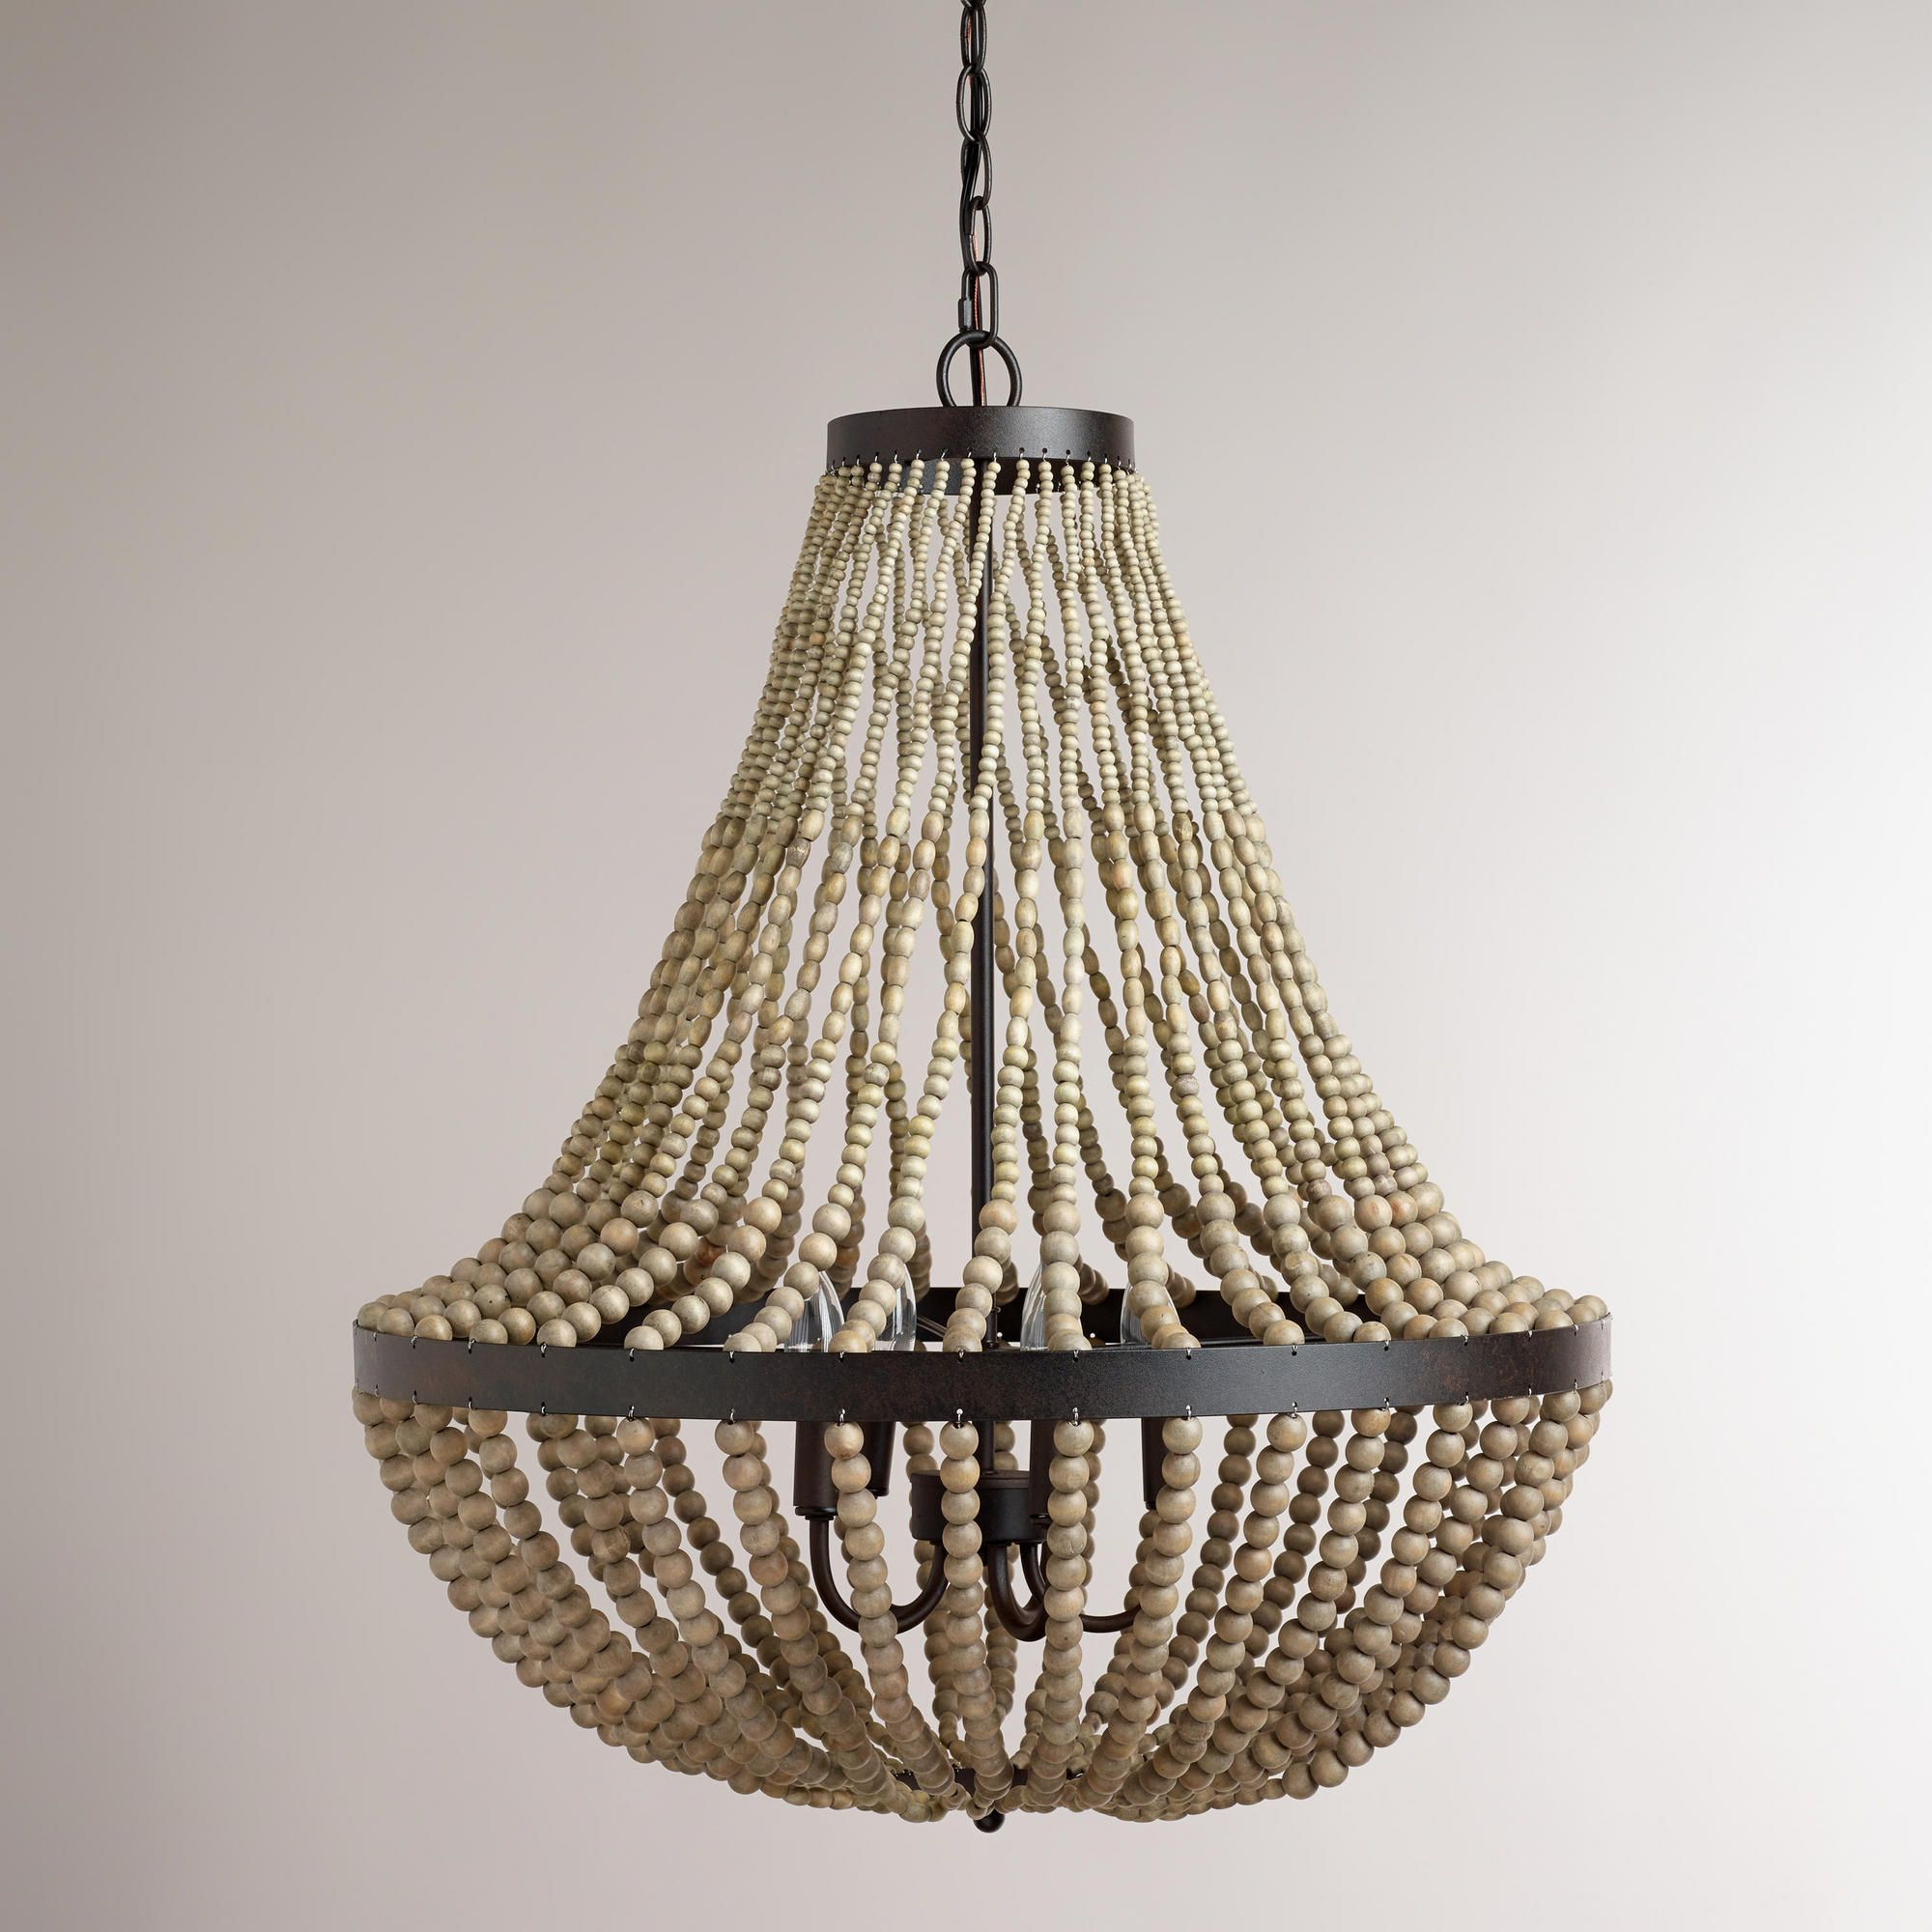 with collection theresia in chandelier maria gb style the product en of light large bohemian